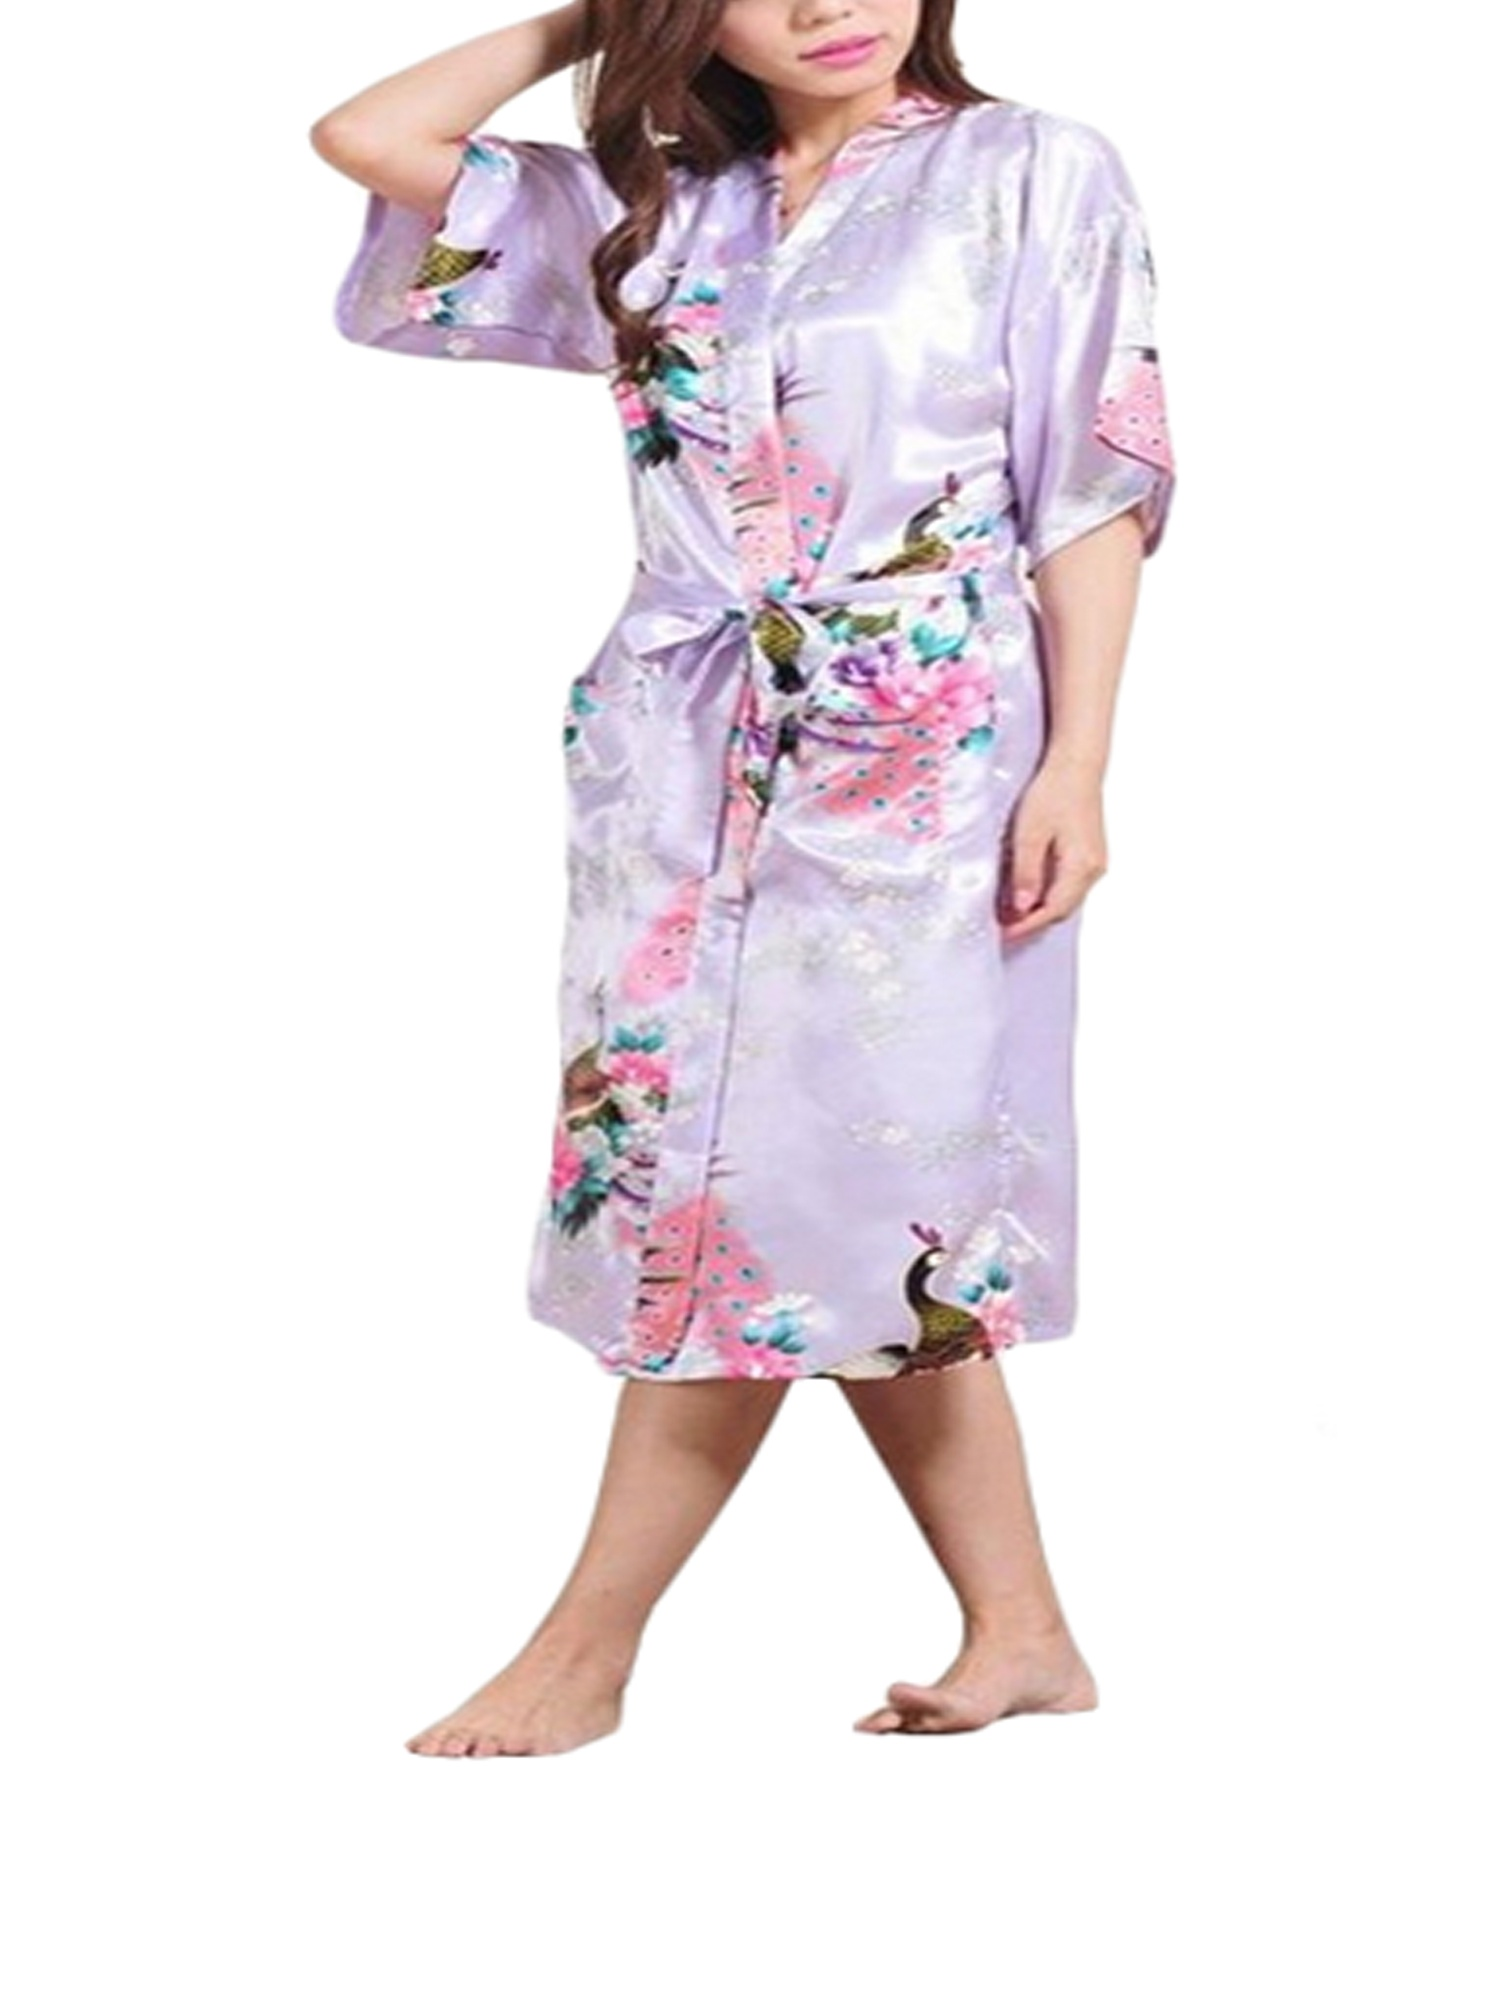 Medium Length Womens Robes, Sizes 2 to 20, Bride & Bridesmaid Robe - Floral Lightweight Sleepwear